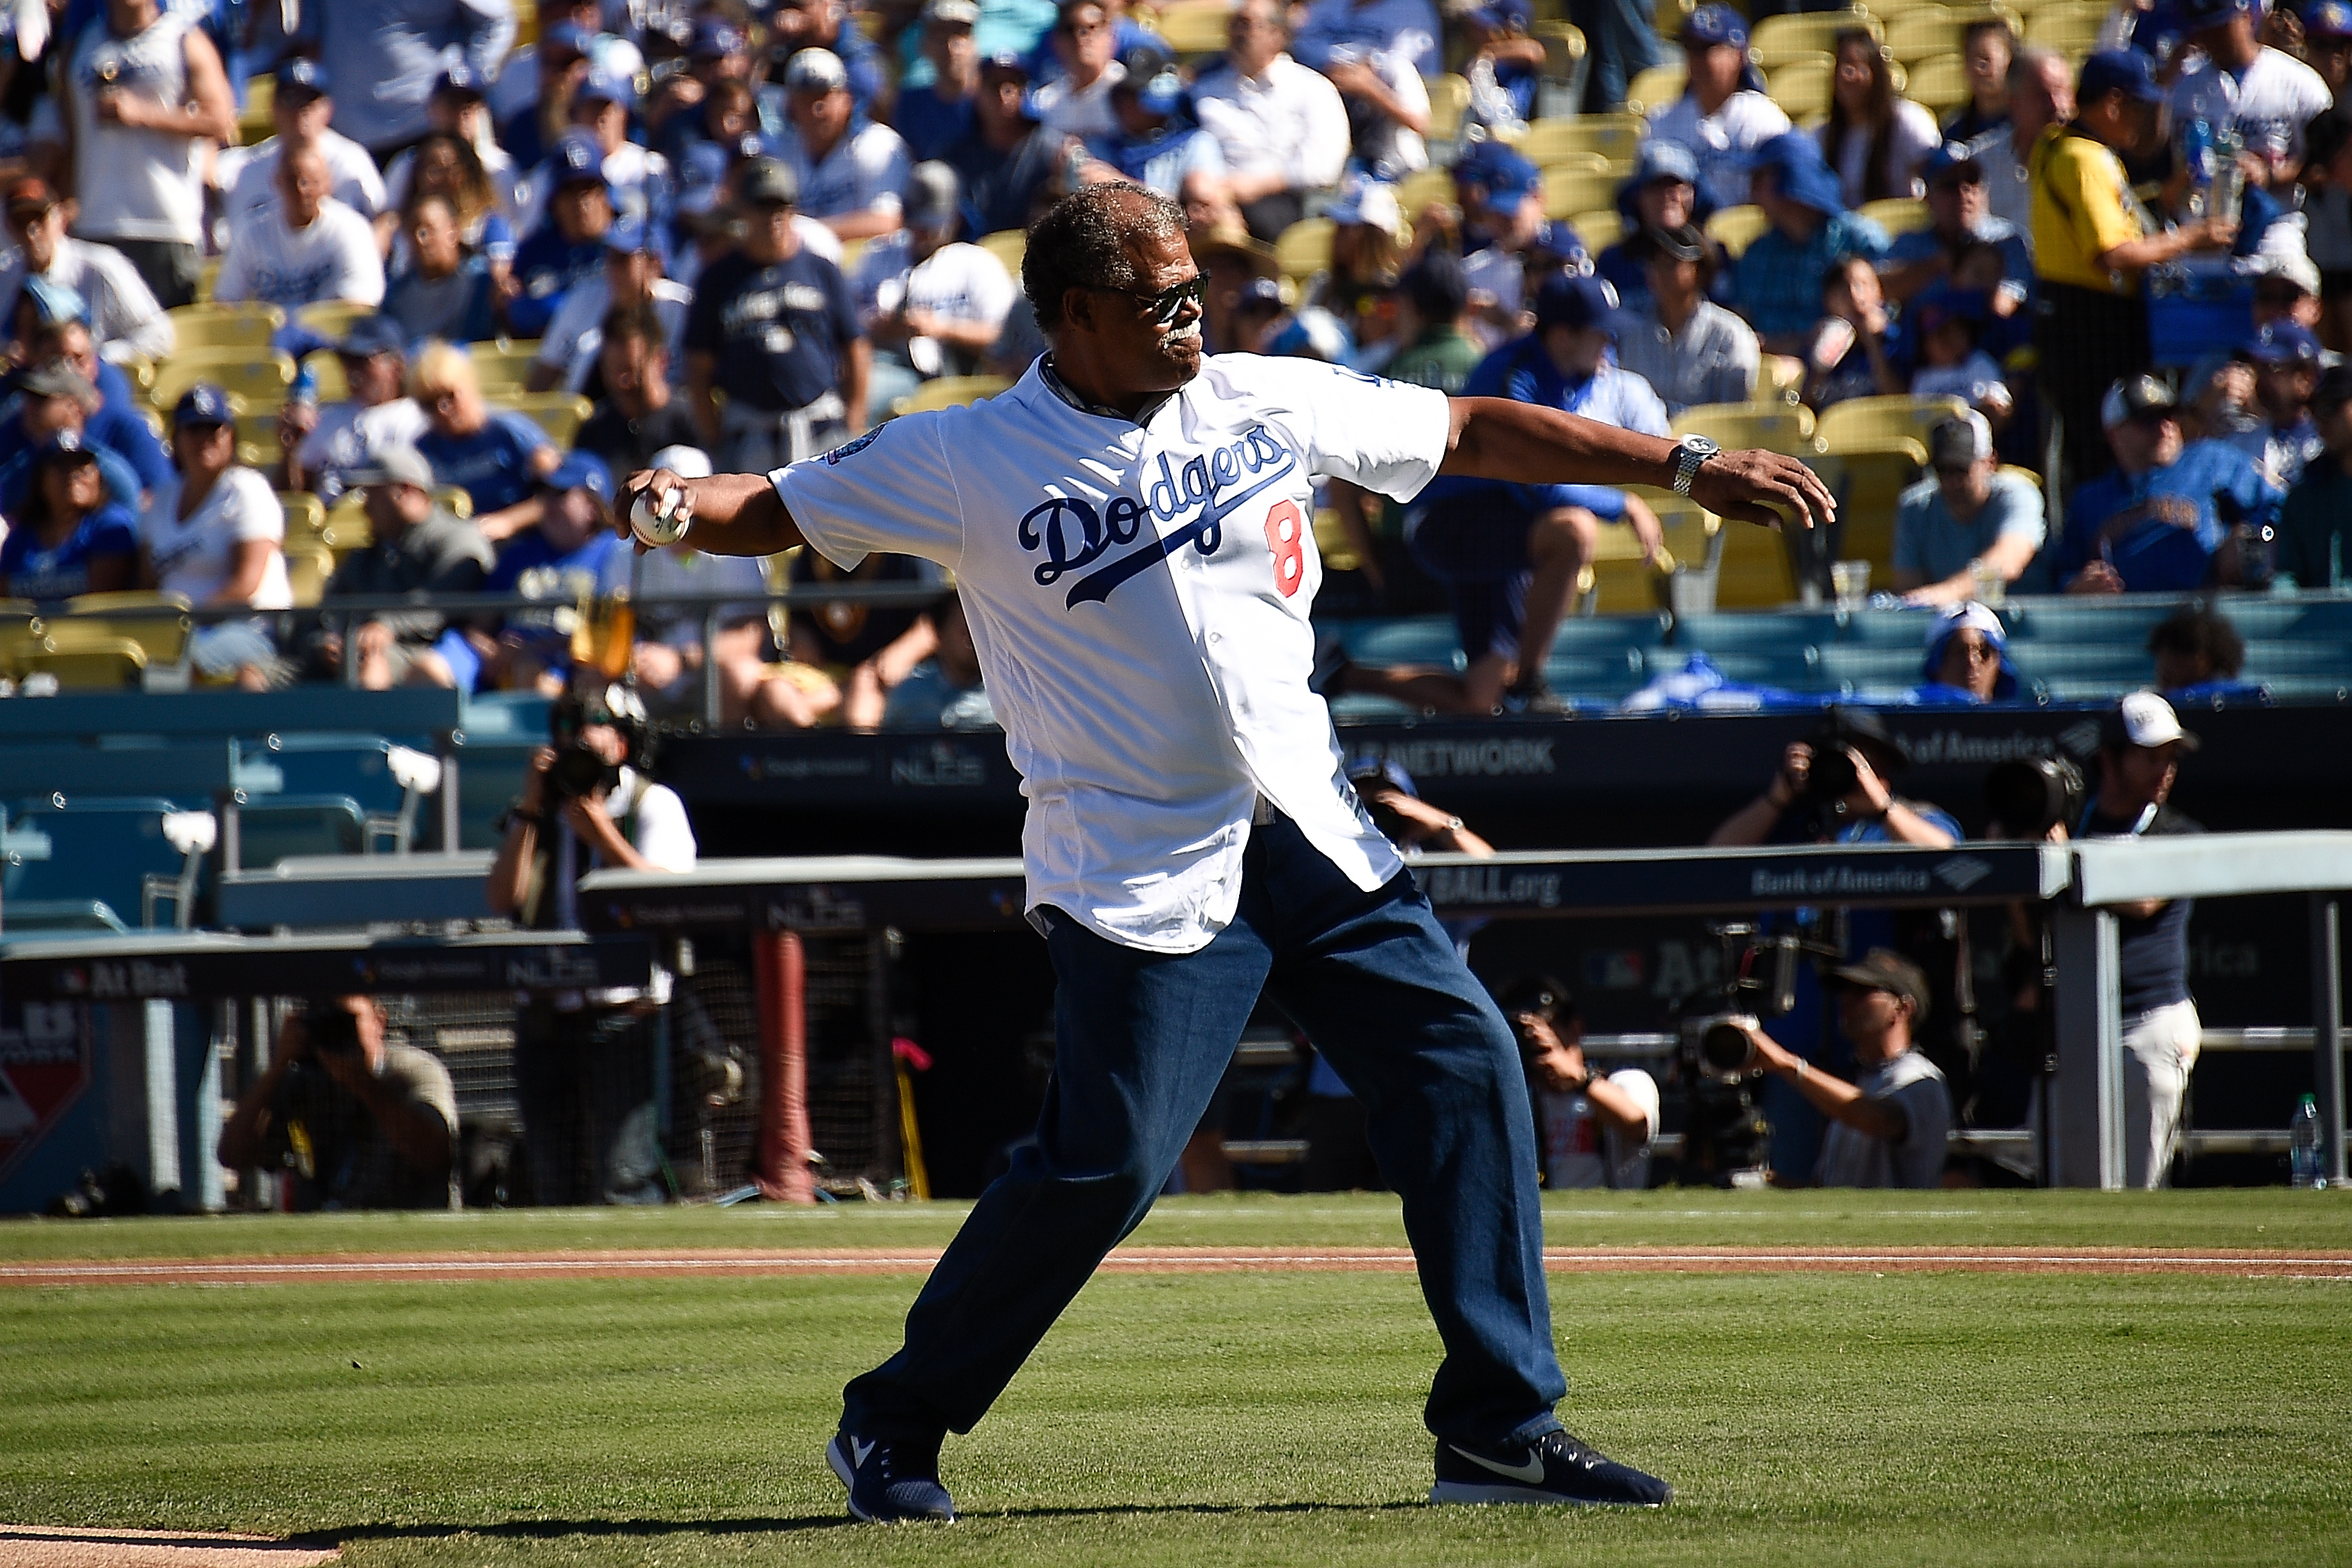 Former Los Angeles Dodger Reggie Smith throws out the first pitch prior to Game Five of the National League Championship Series between the Los Angeles Dodgers and the Milwaukee Brewers at Dodger Stadium on October 17, 2018 in Los Angeles, California. (Photo by Kevork Djansezian/Getty Images)